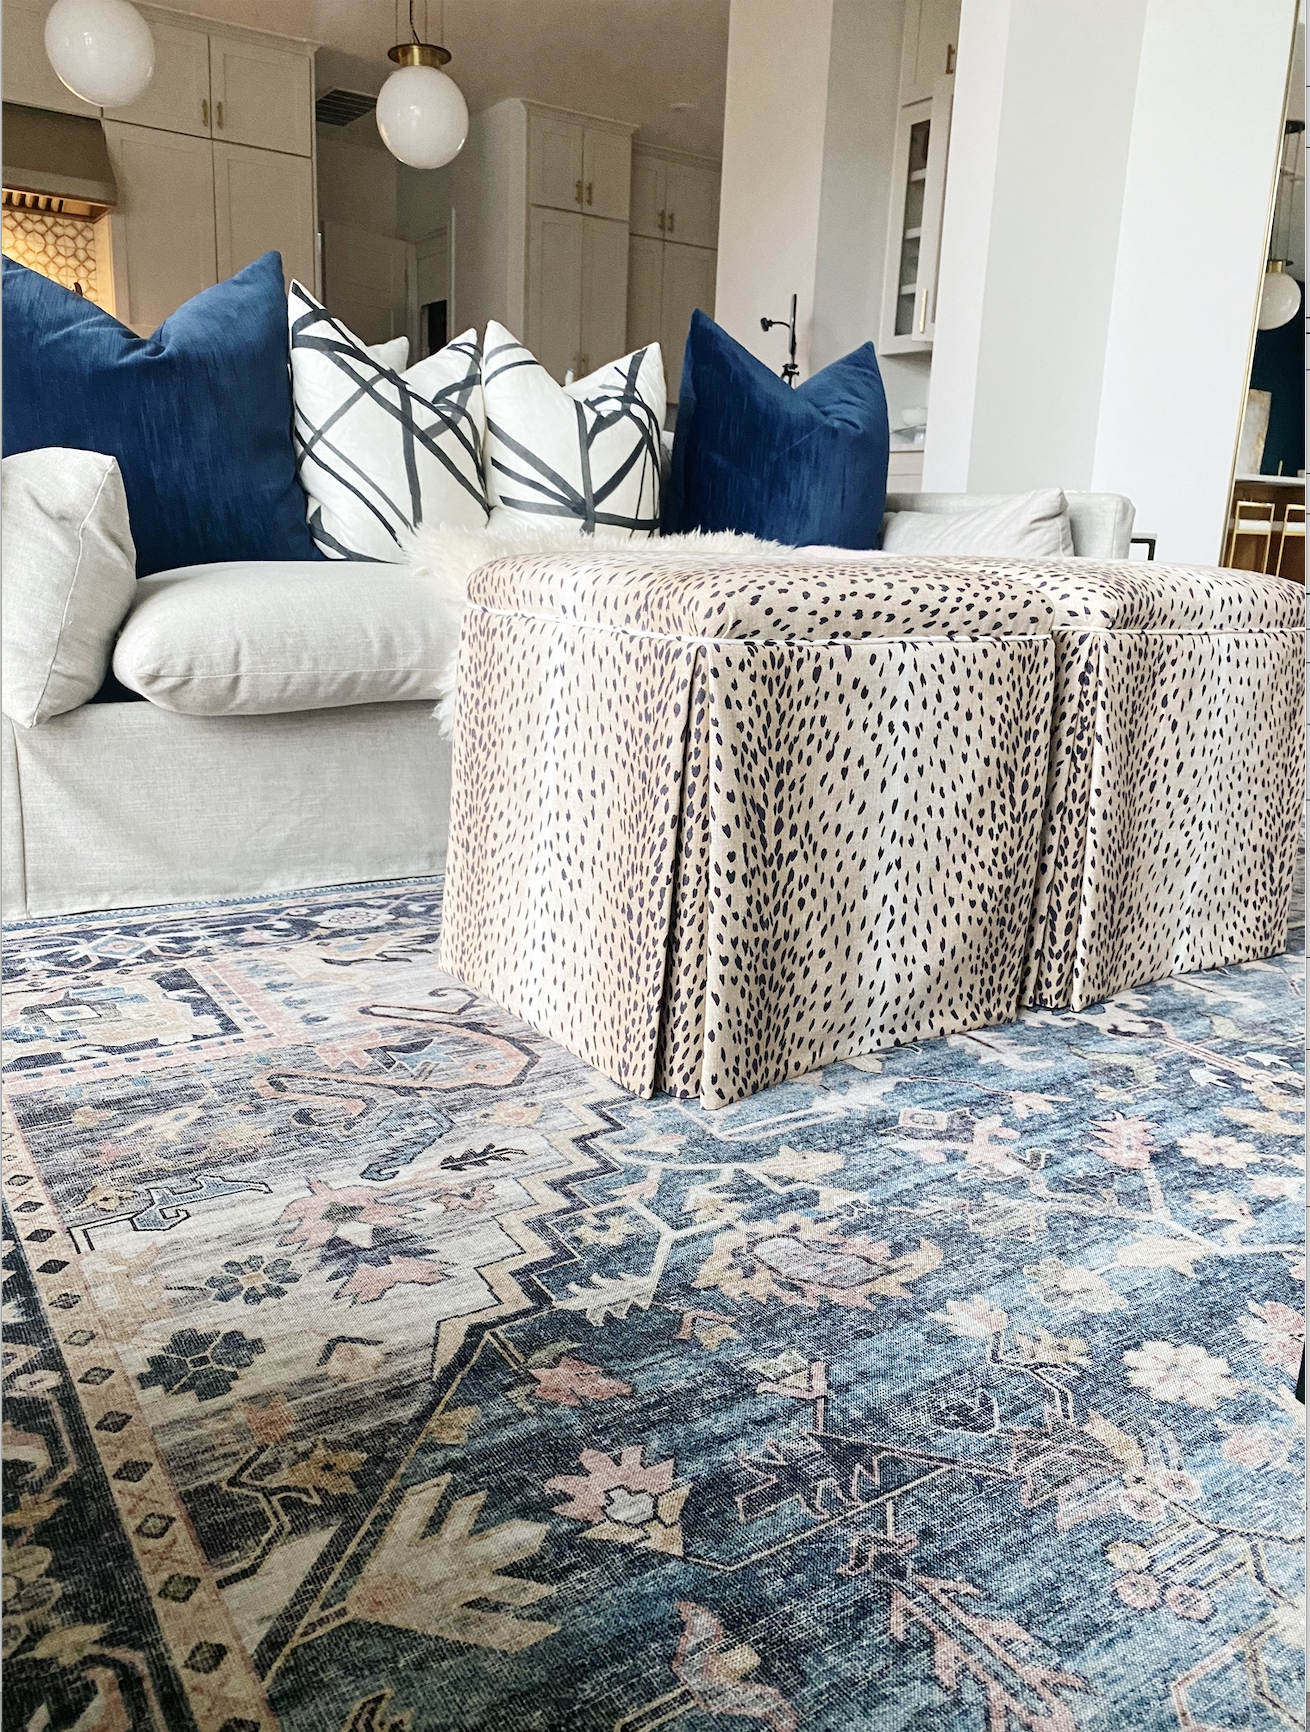 How-to-Update-Your-Rugs-for-Spring  navy Hathaway rug with antelope linen upholstered ottomans in front of a gray slipcovered sofa chair with black and white graphic pillows and navy velvet pillows